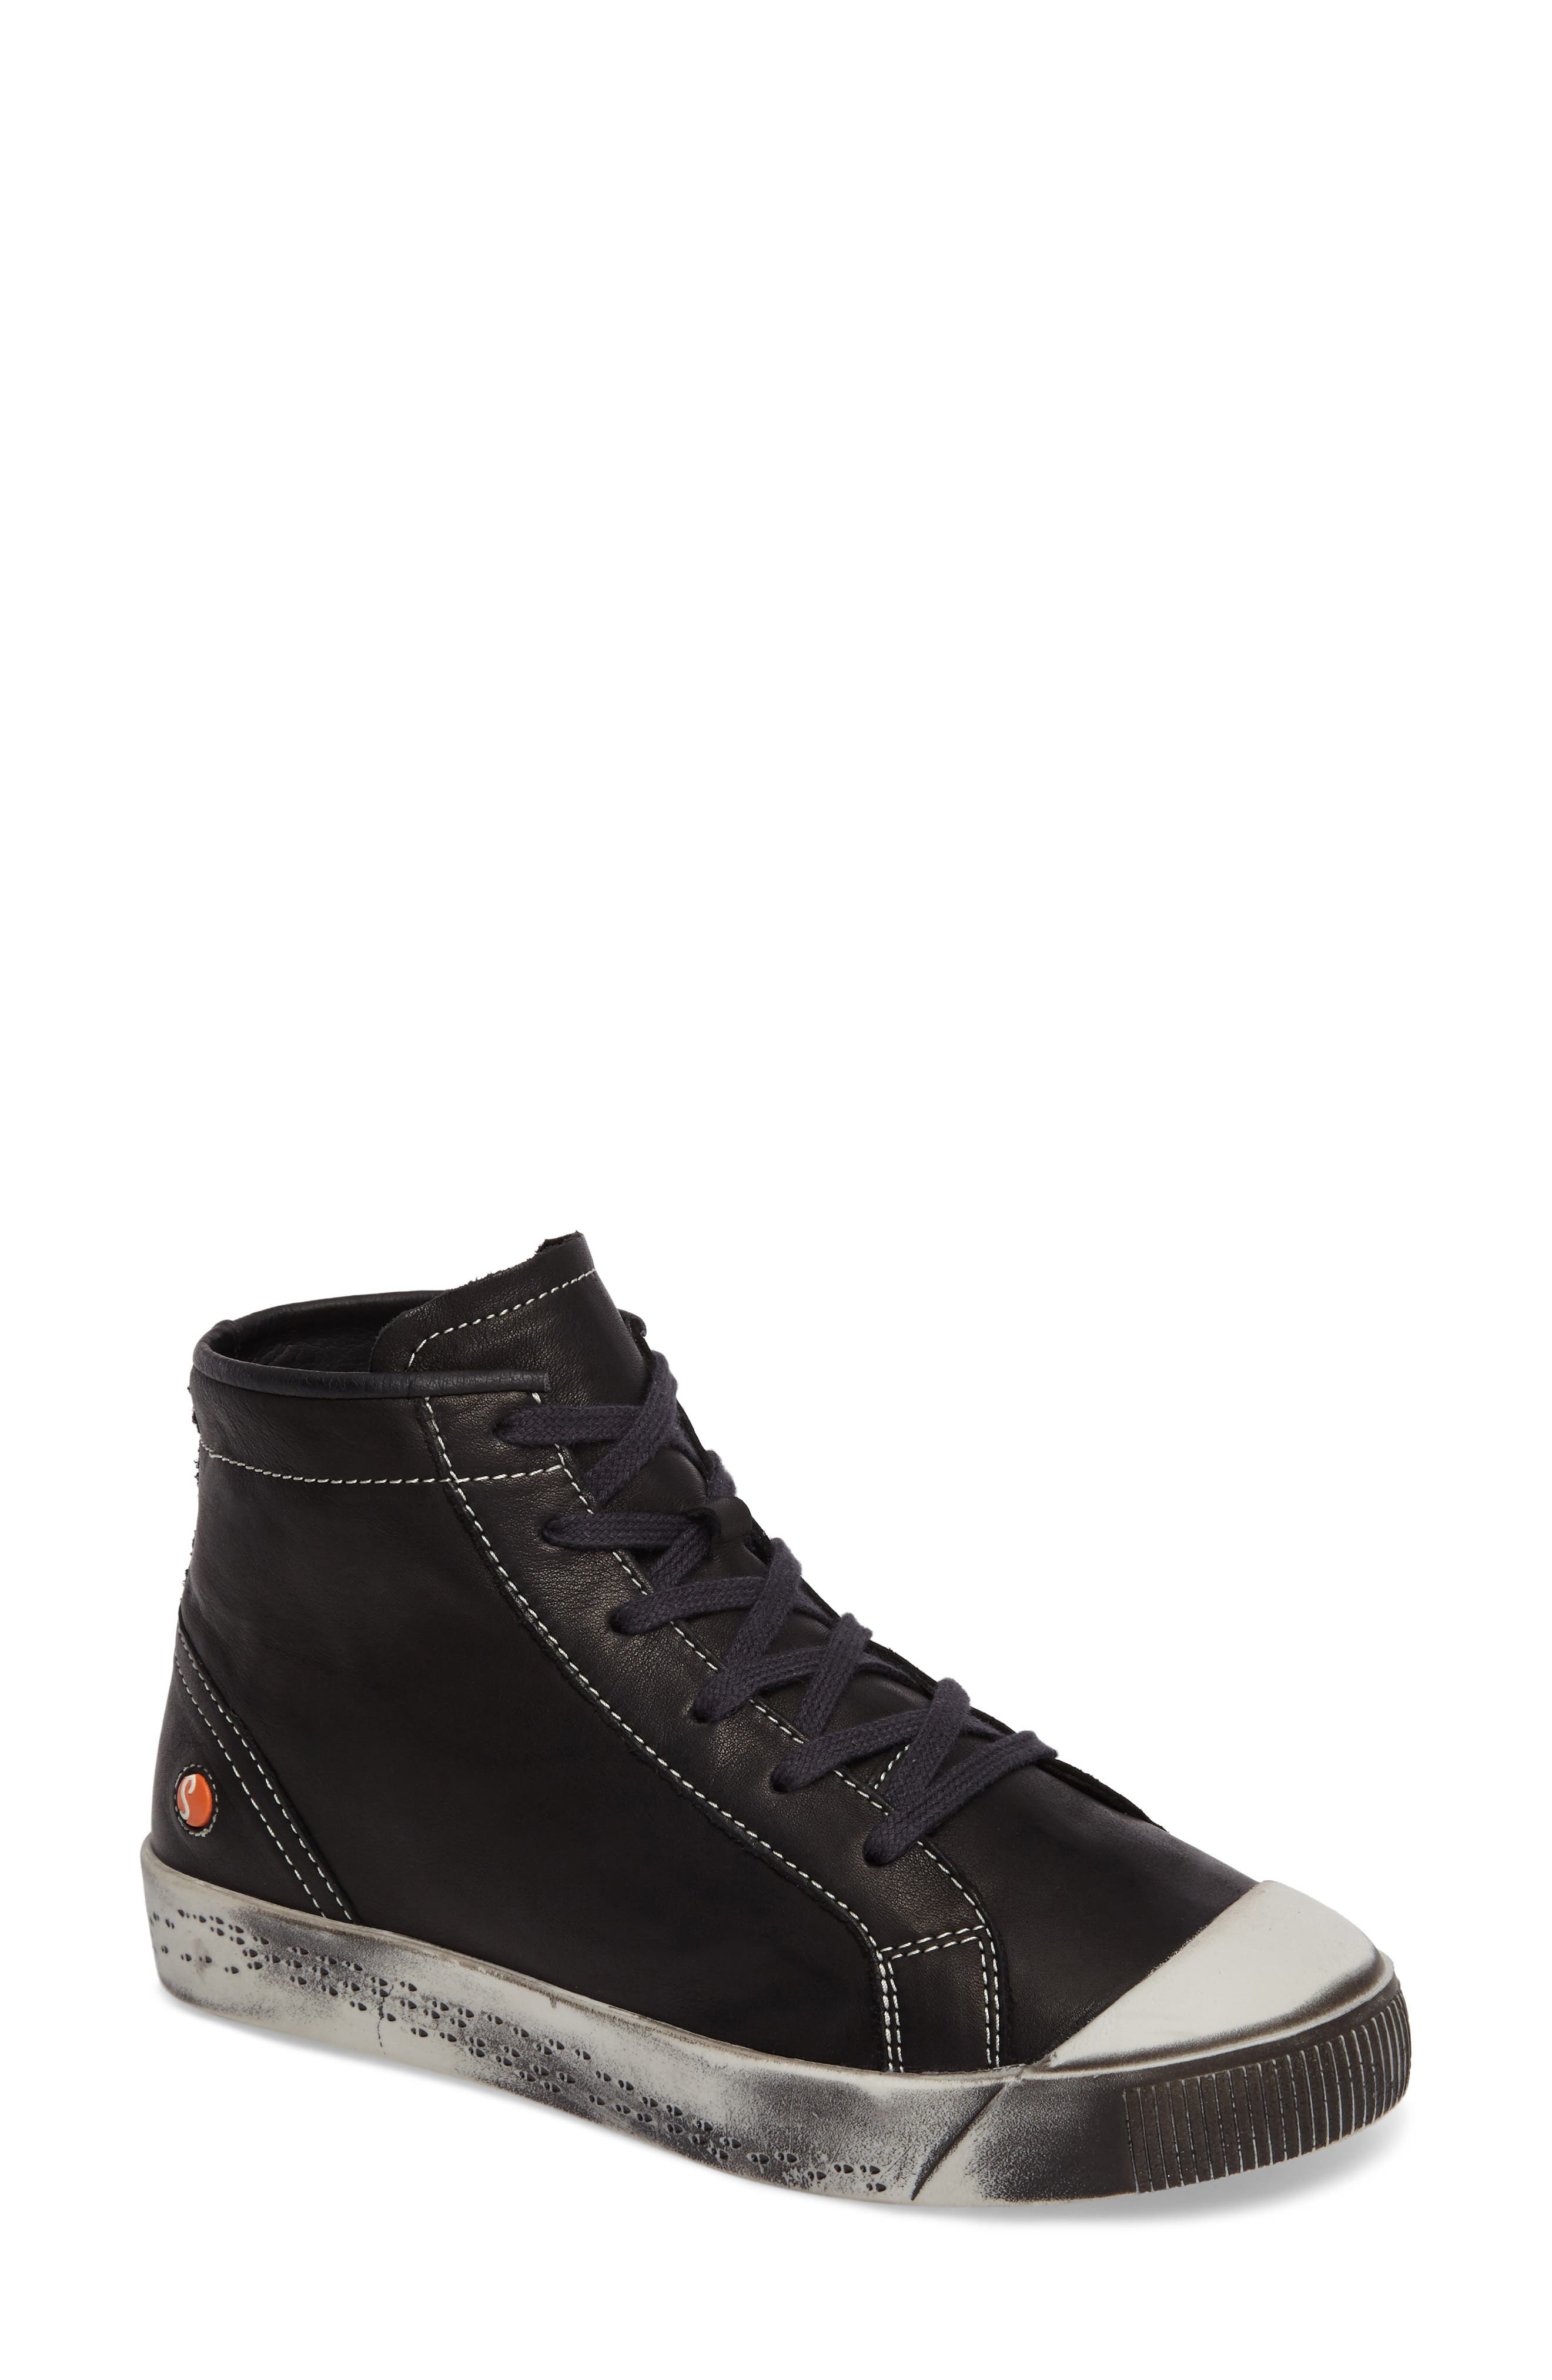 Softinos By Fly London Kip High Top Sneaker, Black